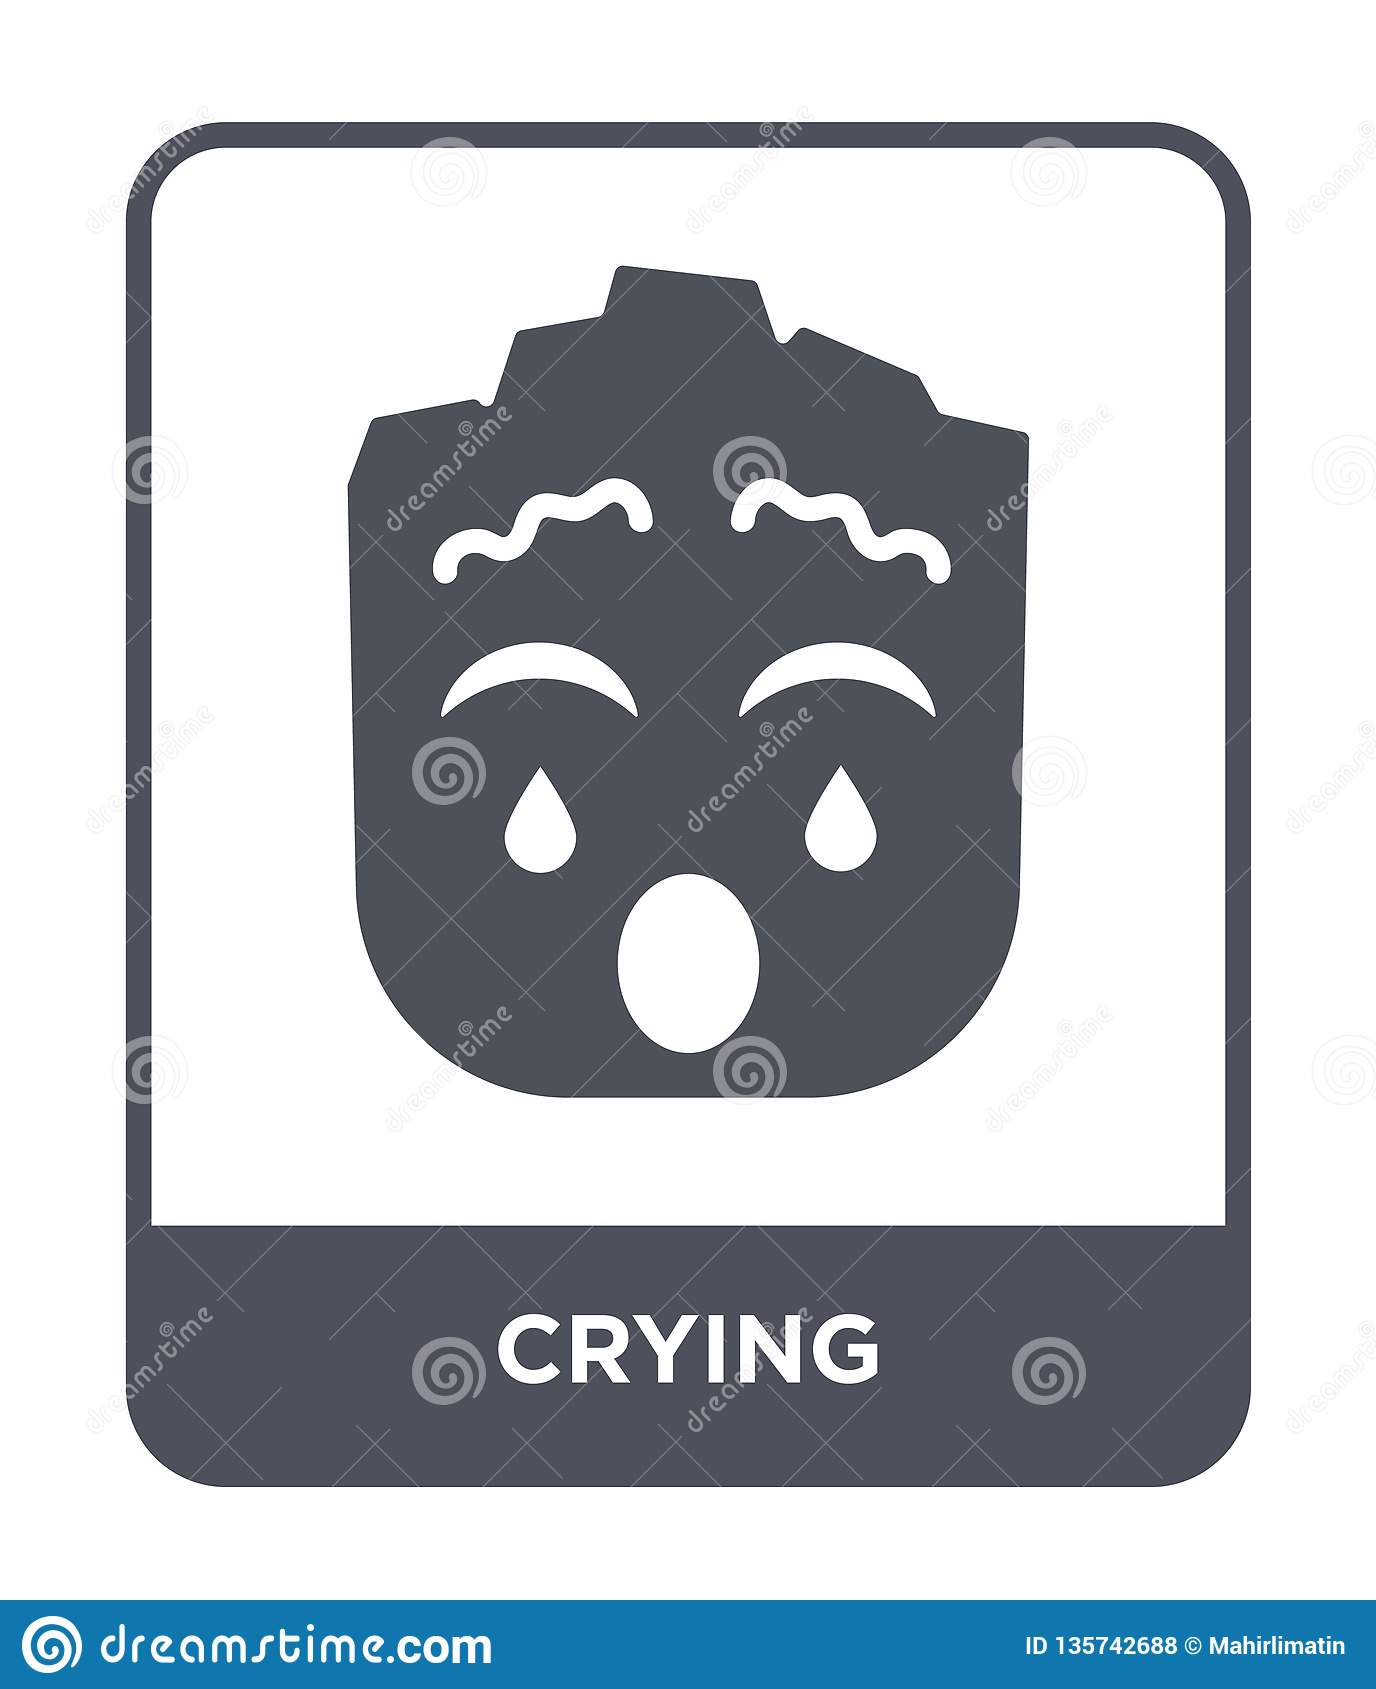 crying icon in trendy design style. crying icon isolated on white background. crying vector icon simple and modern flat symbol for